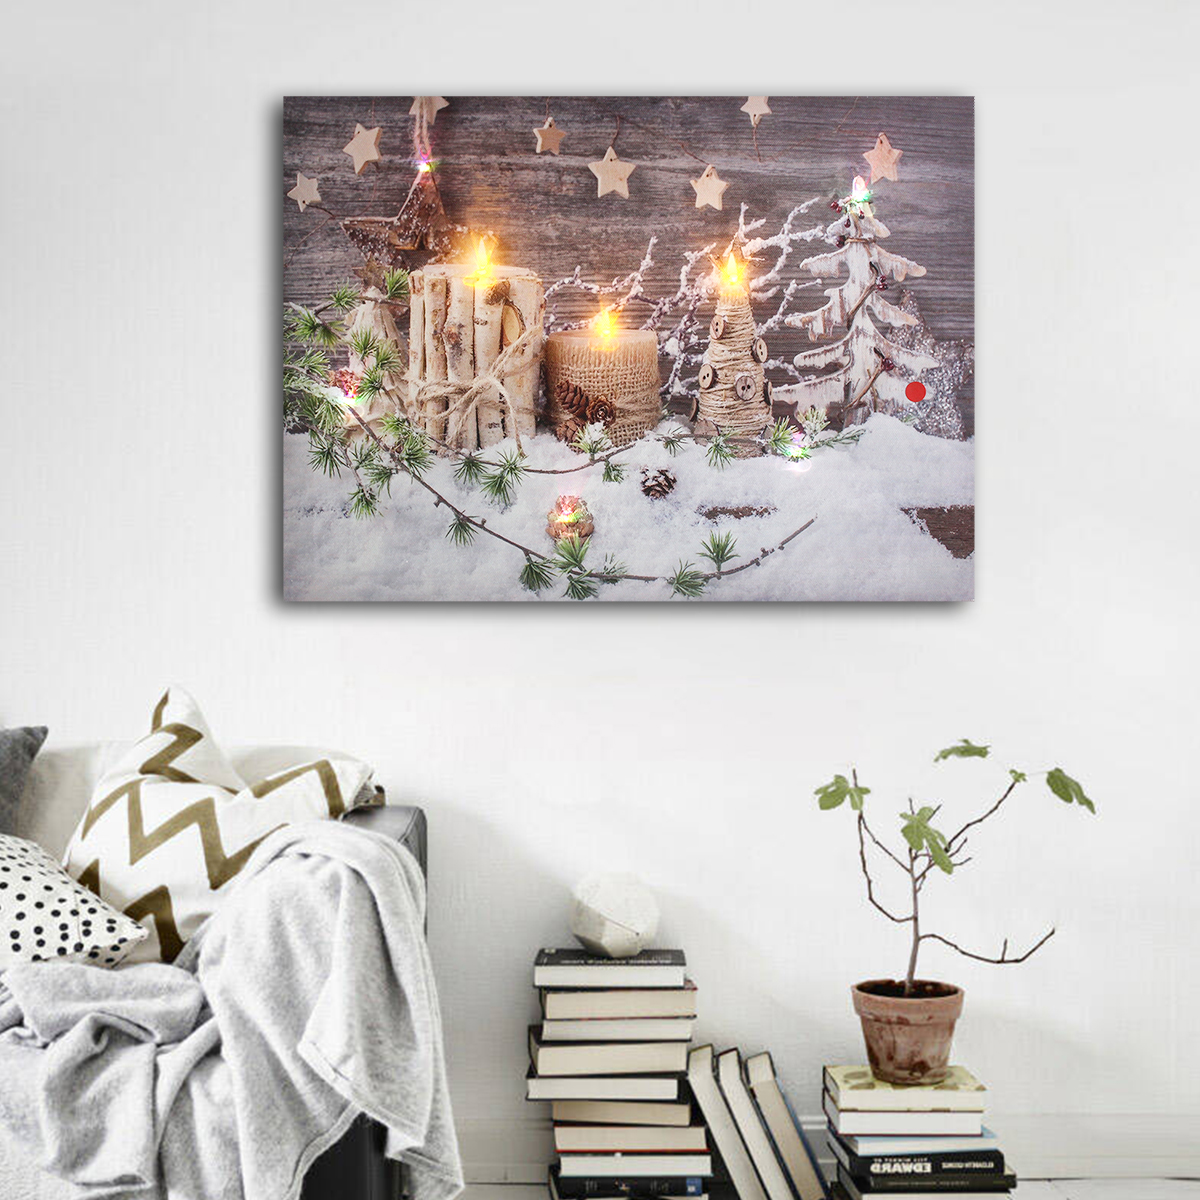 Christmas Decoration Light Up LED Canvas Wall Art Picture Flickering Candles LED Light Up Candle Canvas Picturess Sweet Home Picture Decor Wall Hanging